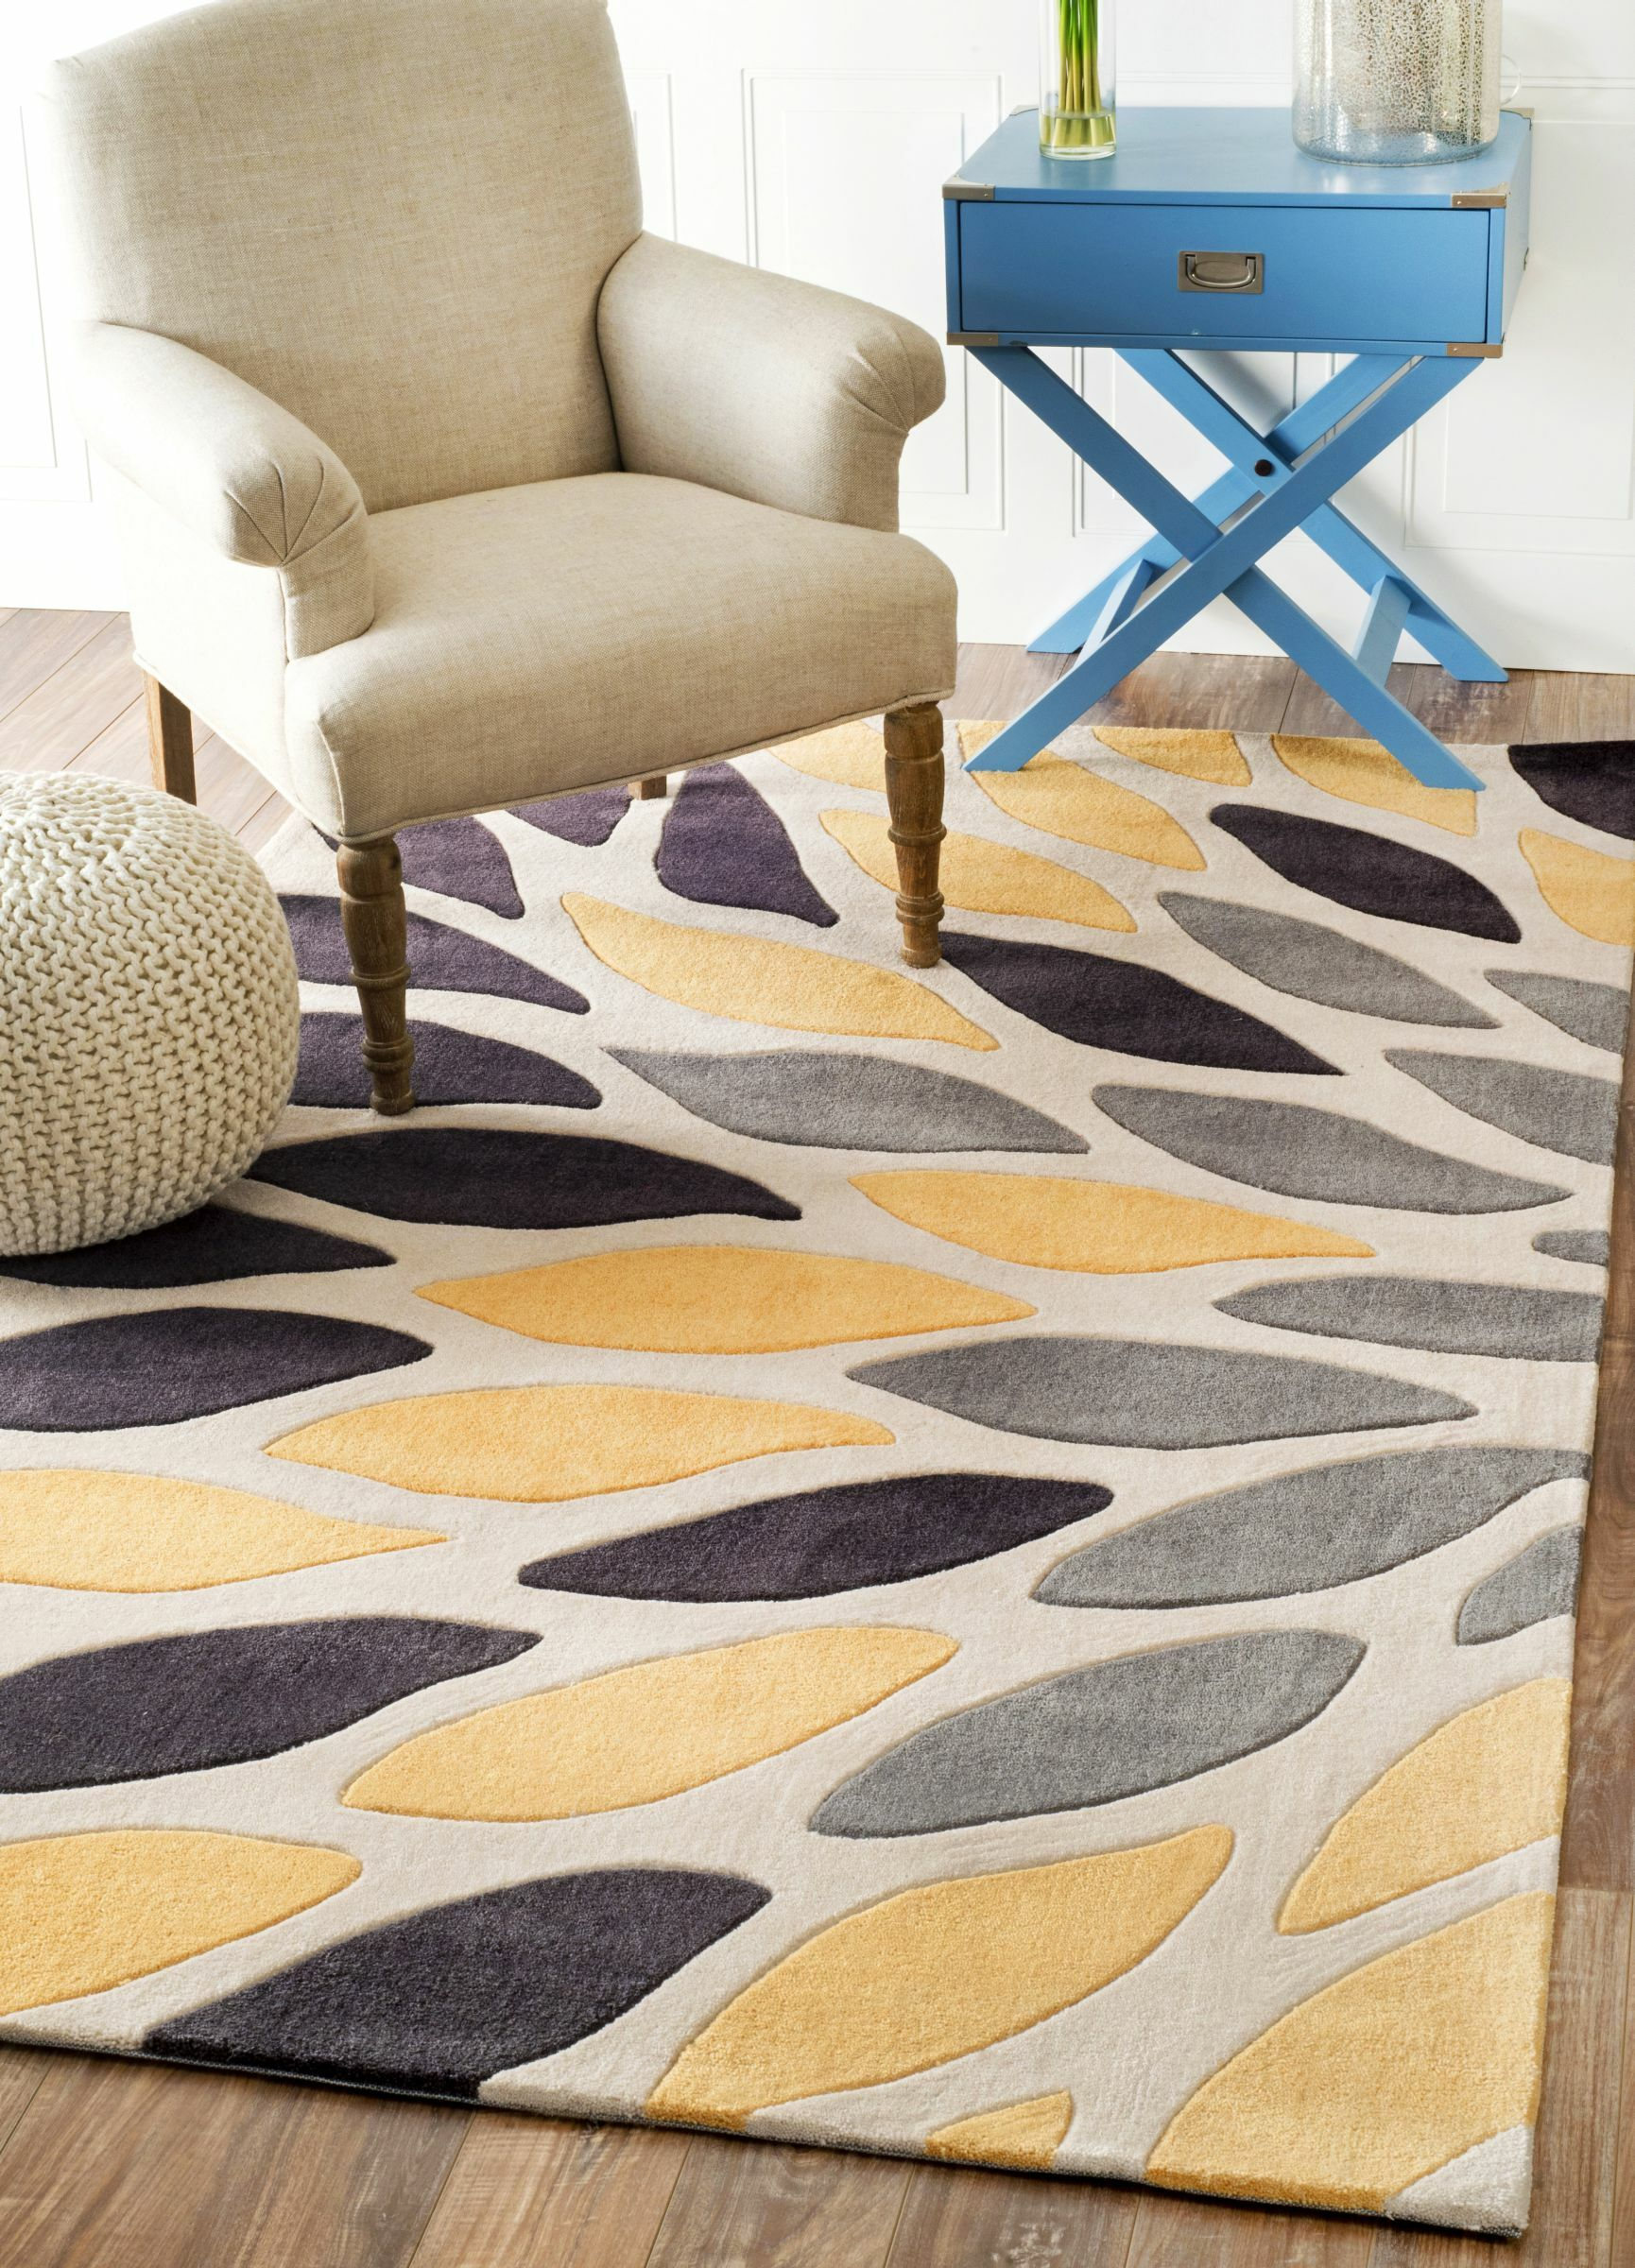 Augustine Hand-Tufted Black/Yellow Area Rug Rug Size: Rectangle 4' x 6'